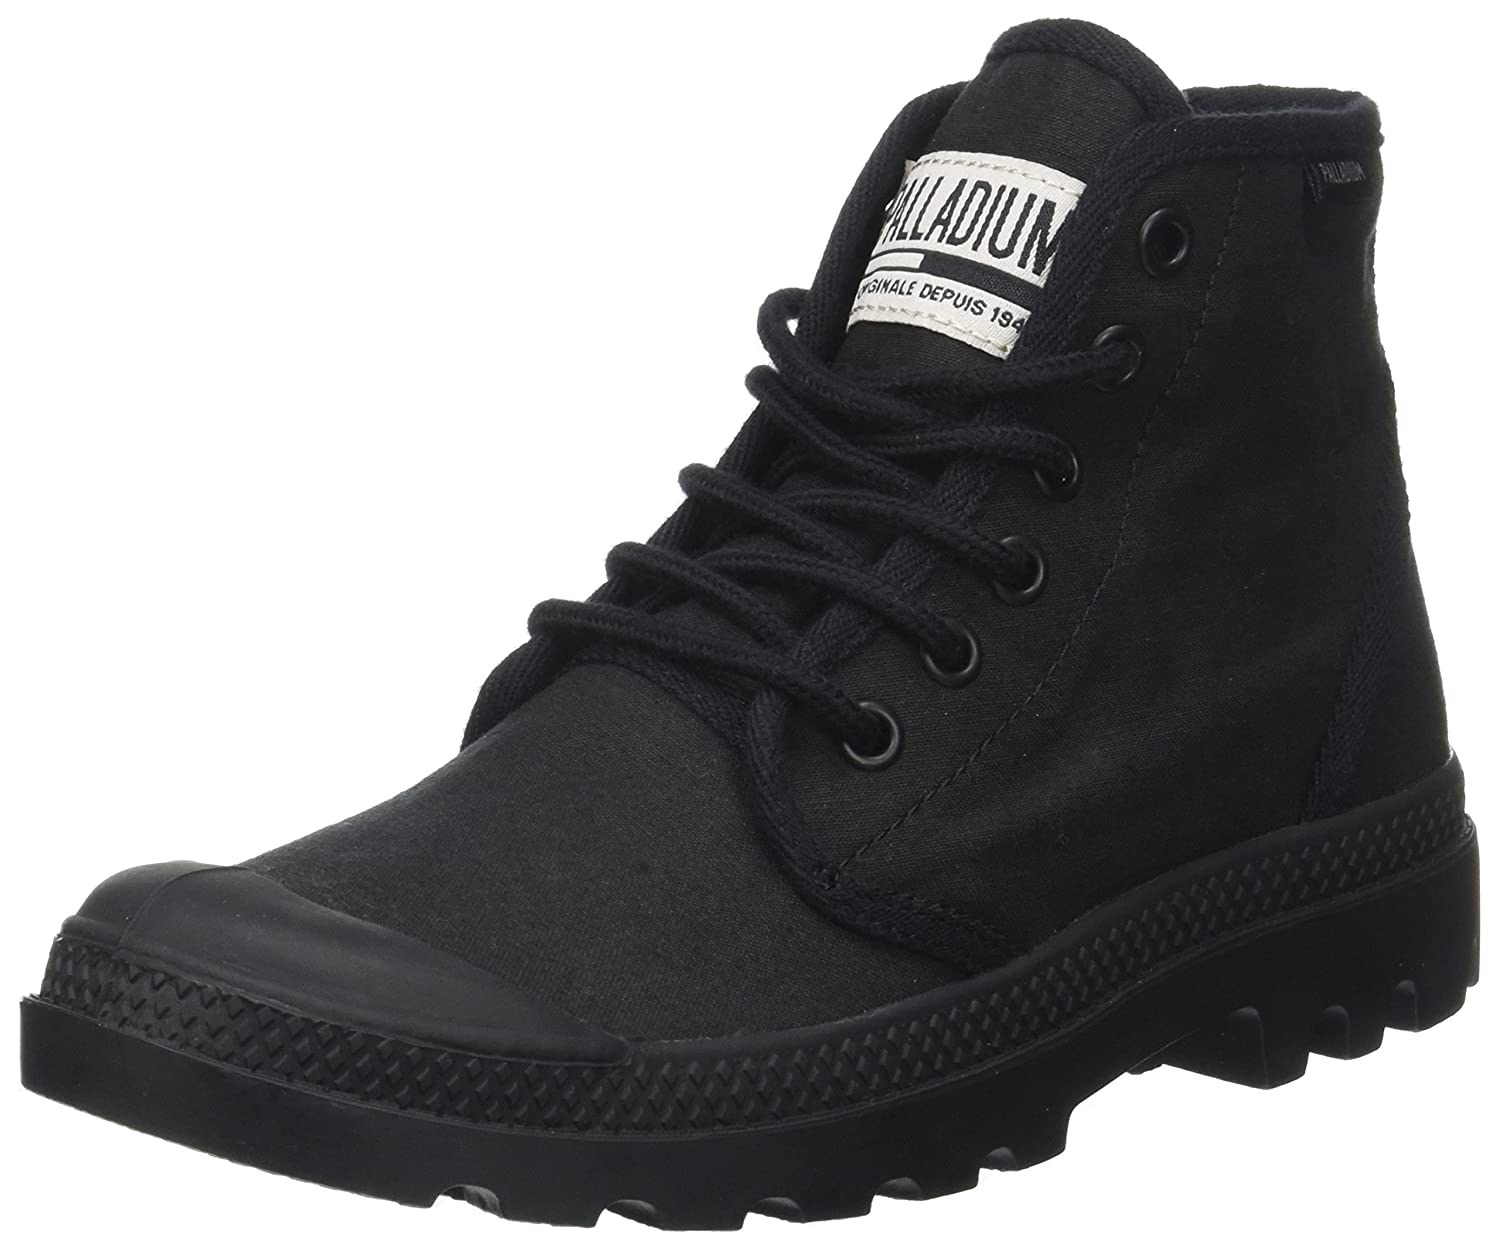 Palladium Pampa Hi O TC U, Zapatillas Altas Unisex Adulto